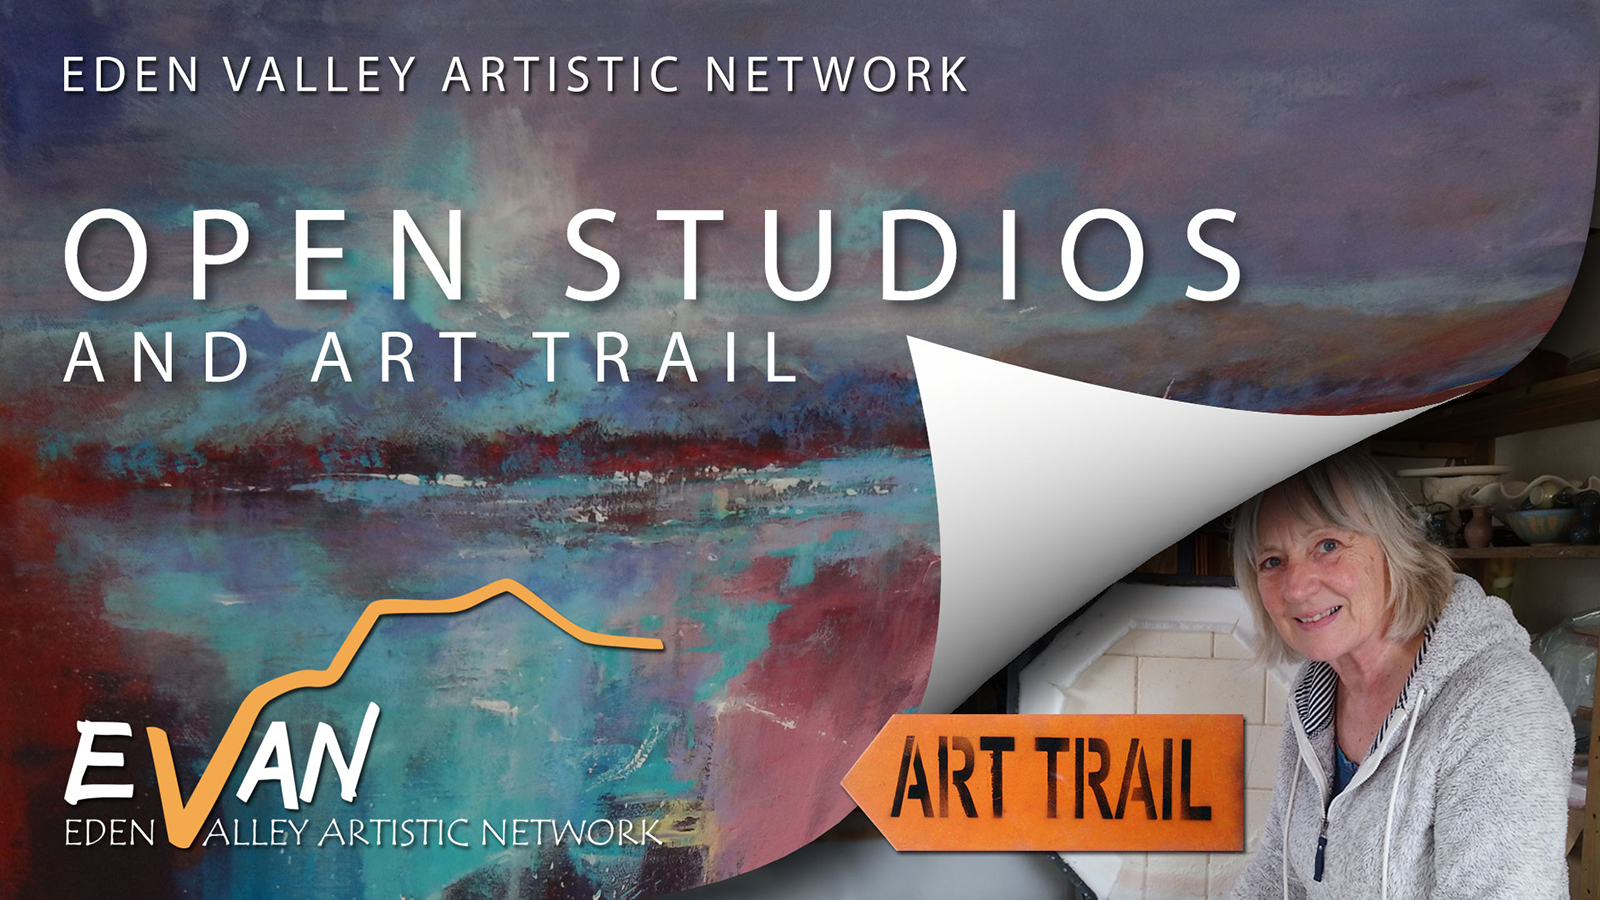 Open Studios and Art Trail